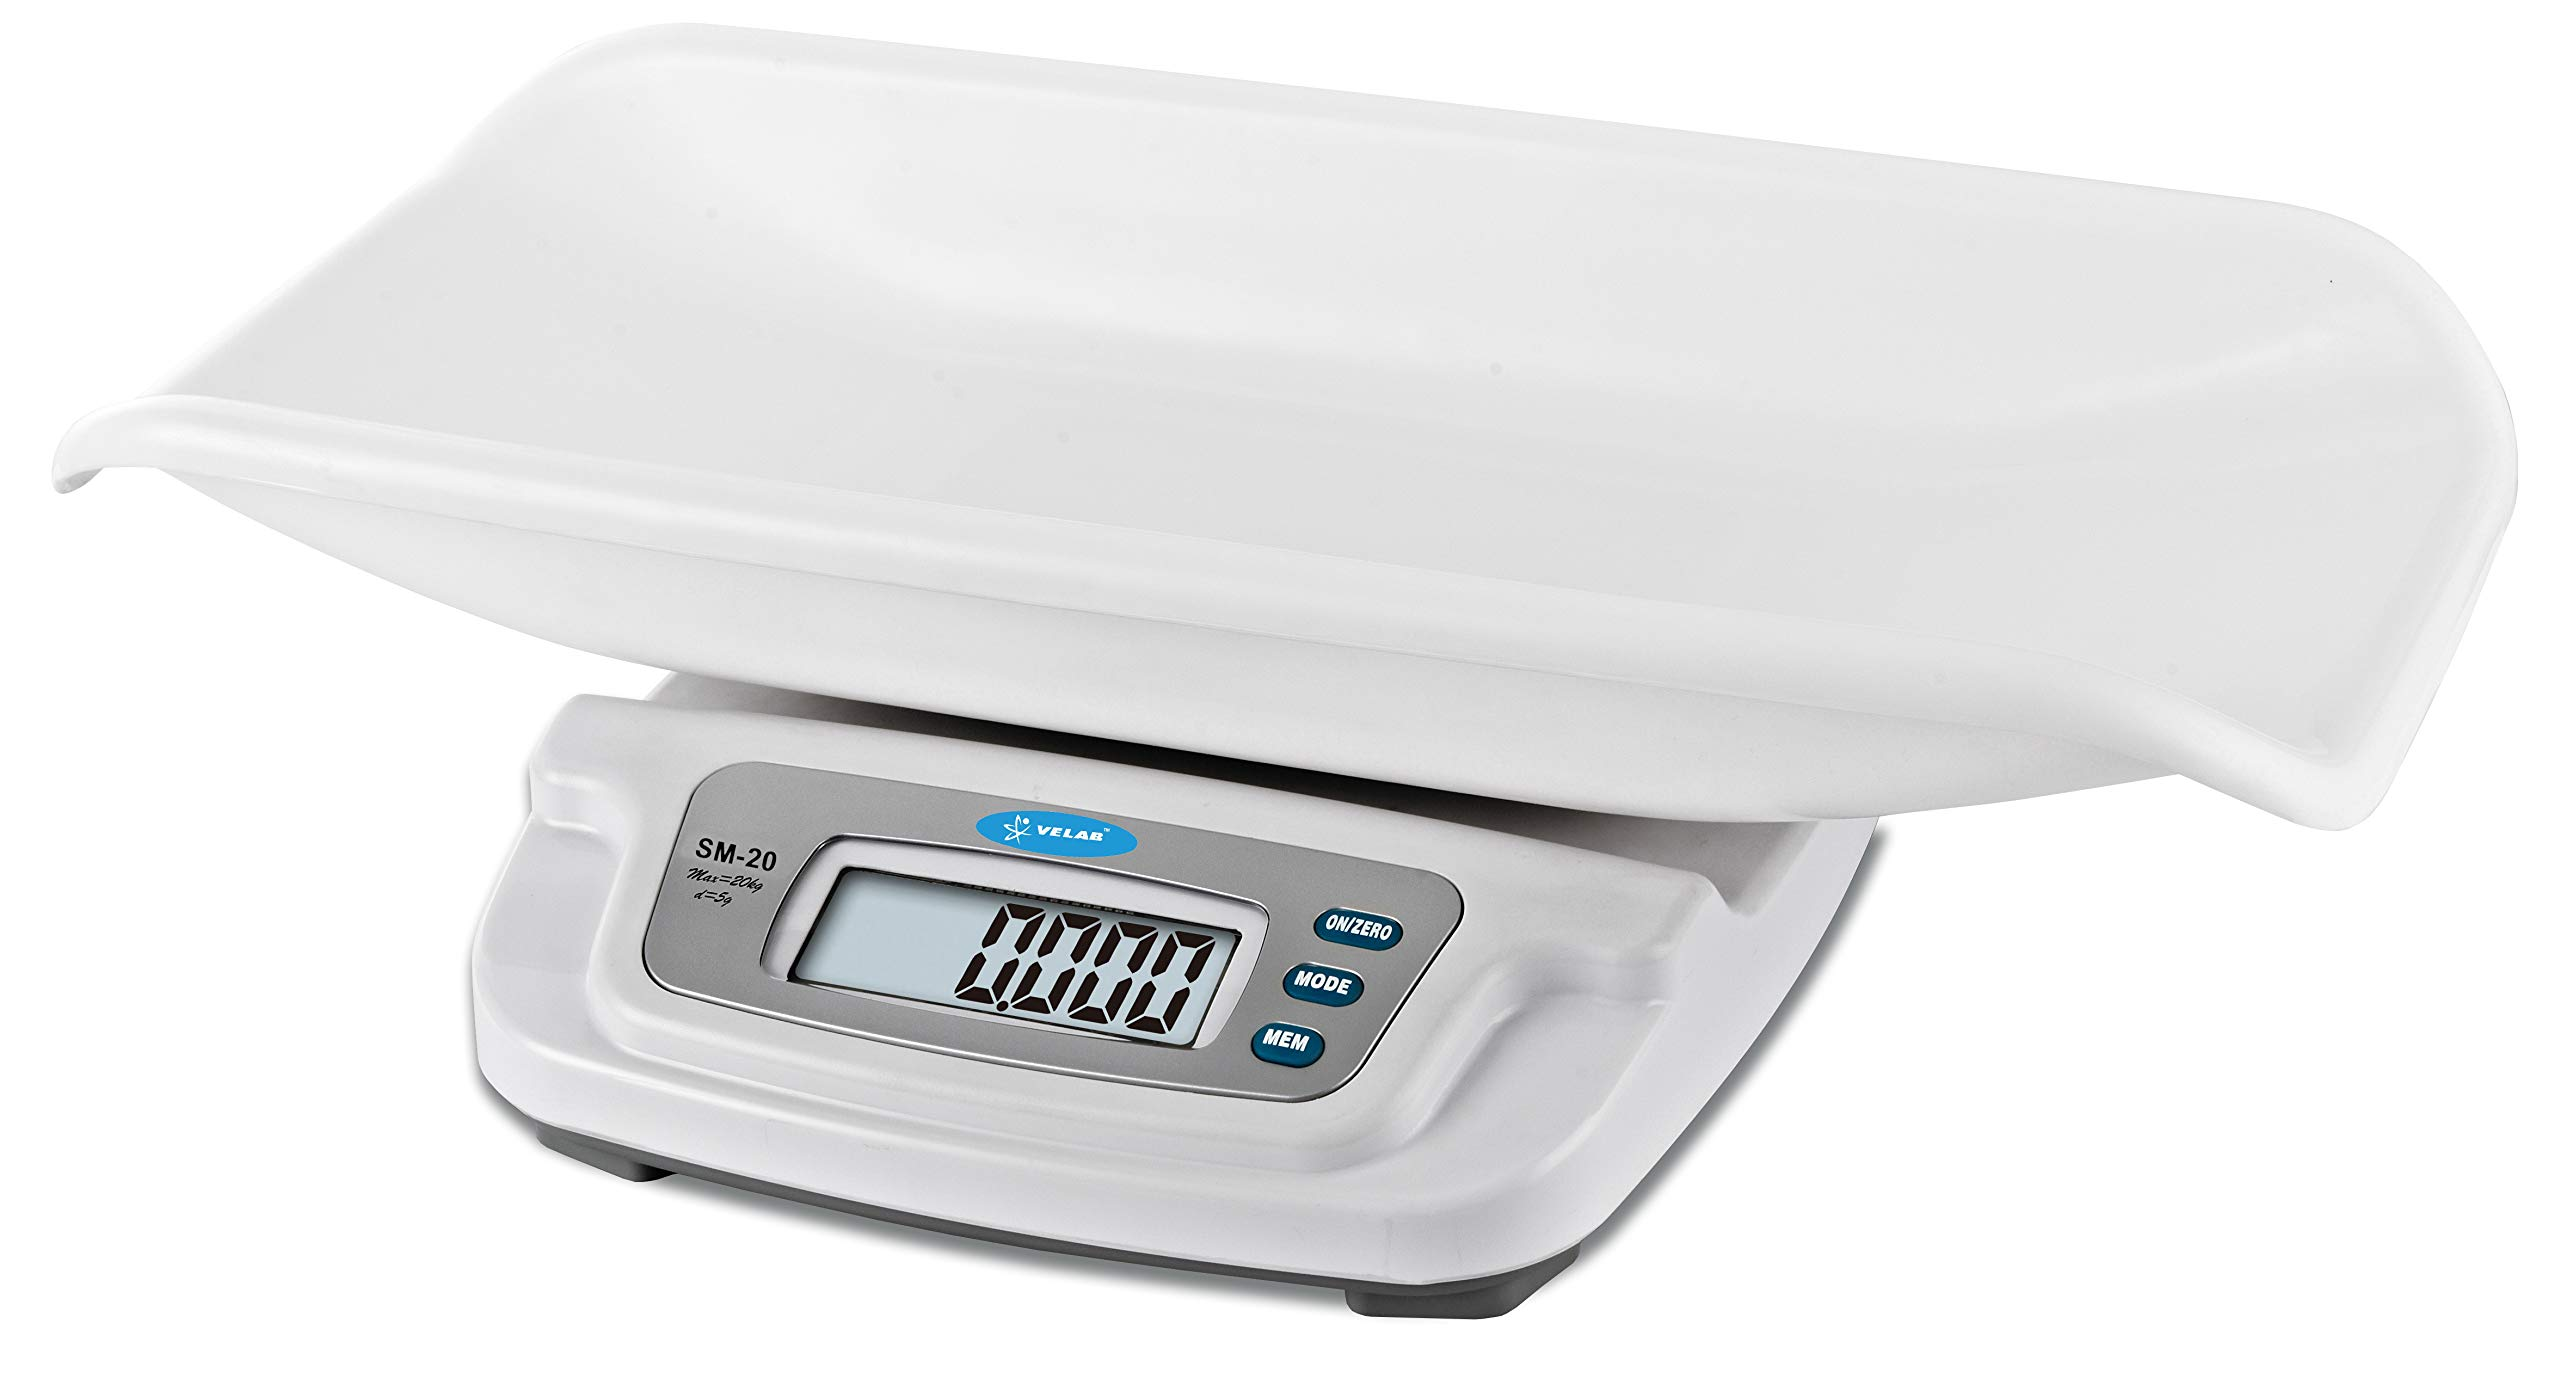 Baby Infant Toddler Scale 44x0.01 lb / 20kg x 5g,AC Adapter and Battery, VELAB VE-20 by VELAB